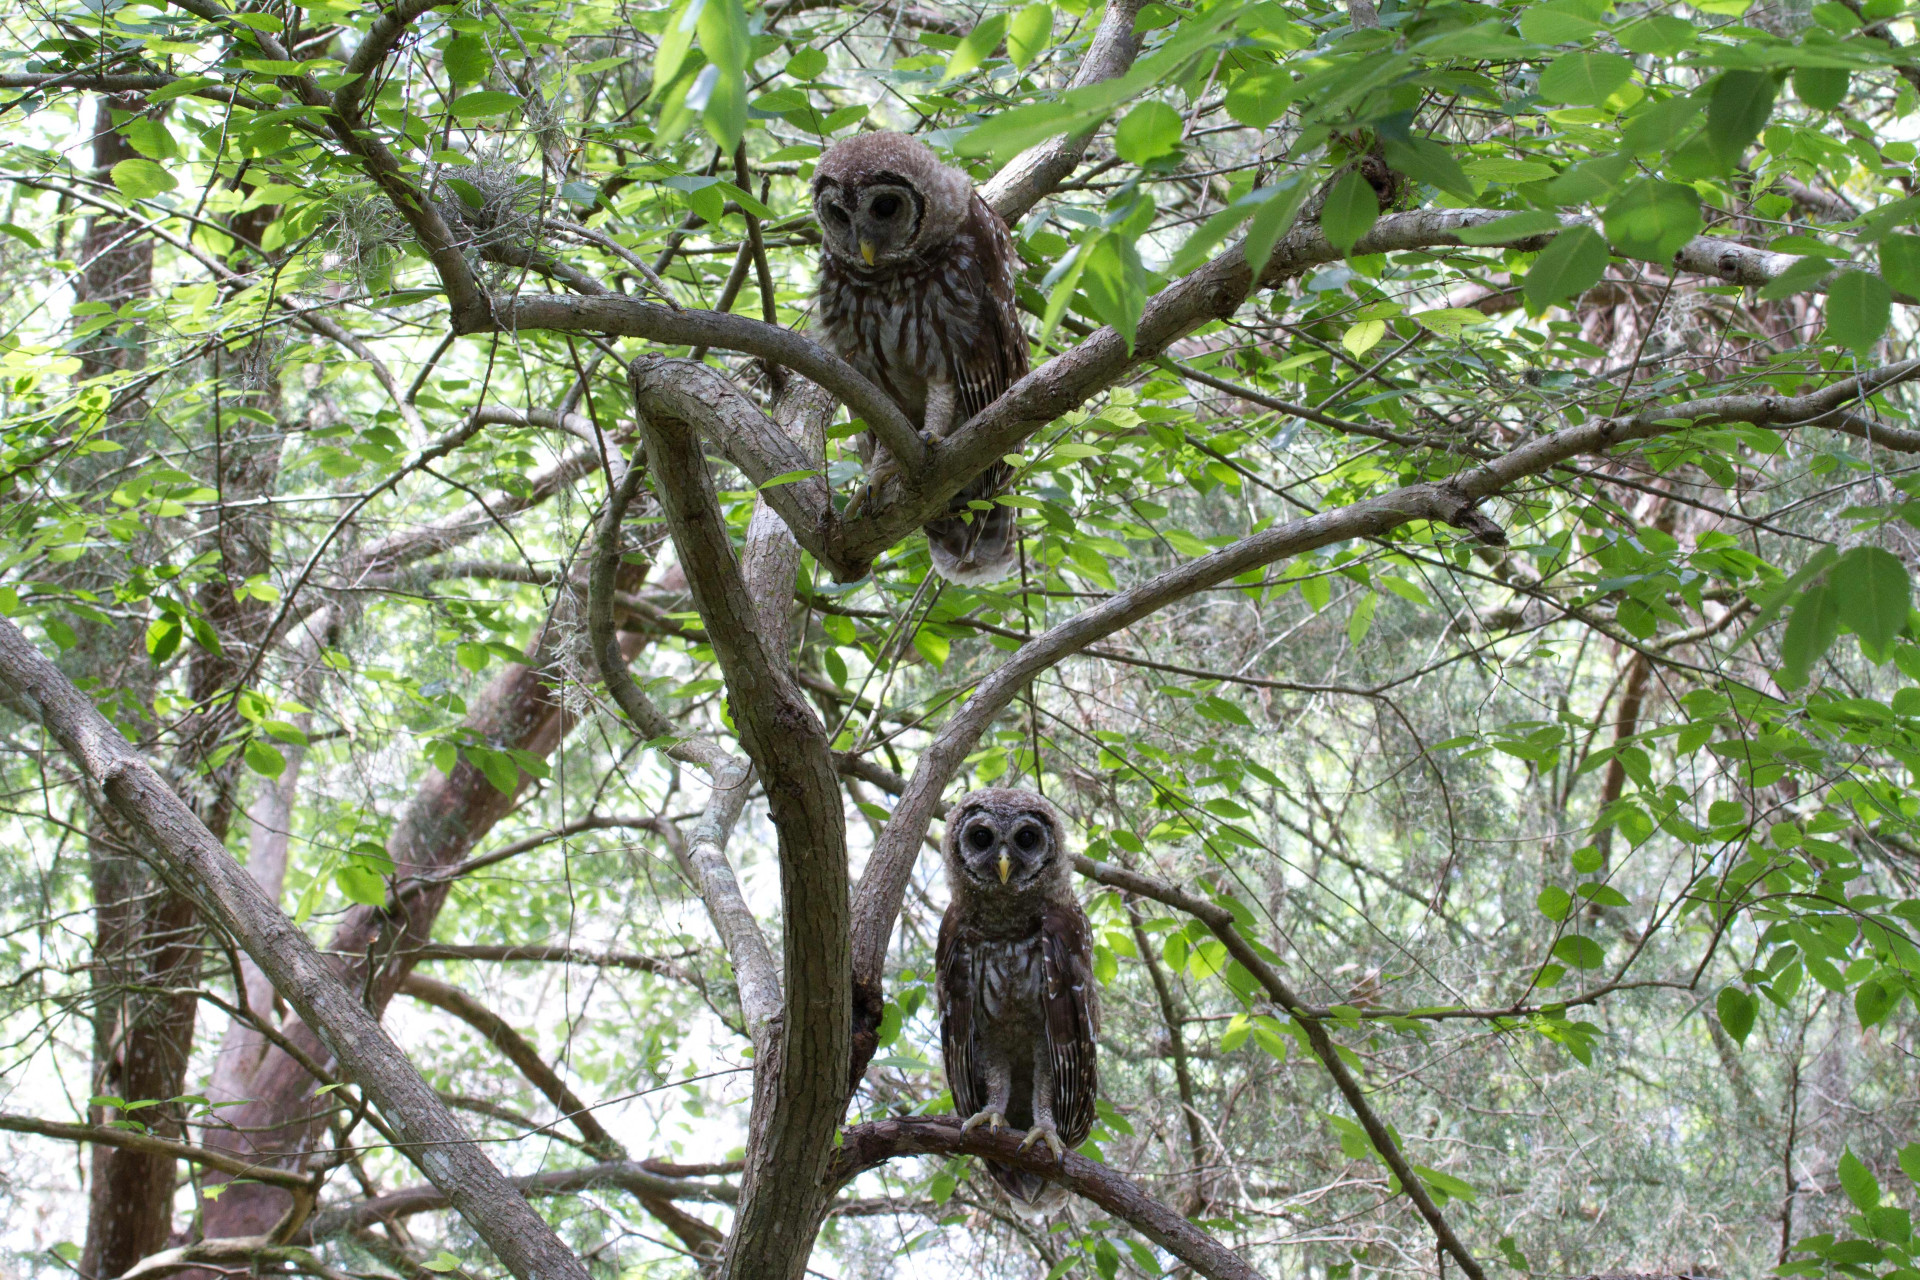 Two juvenile Barred Owls in Sarasota